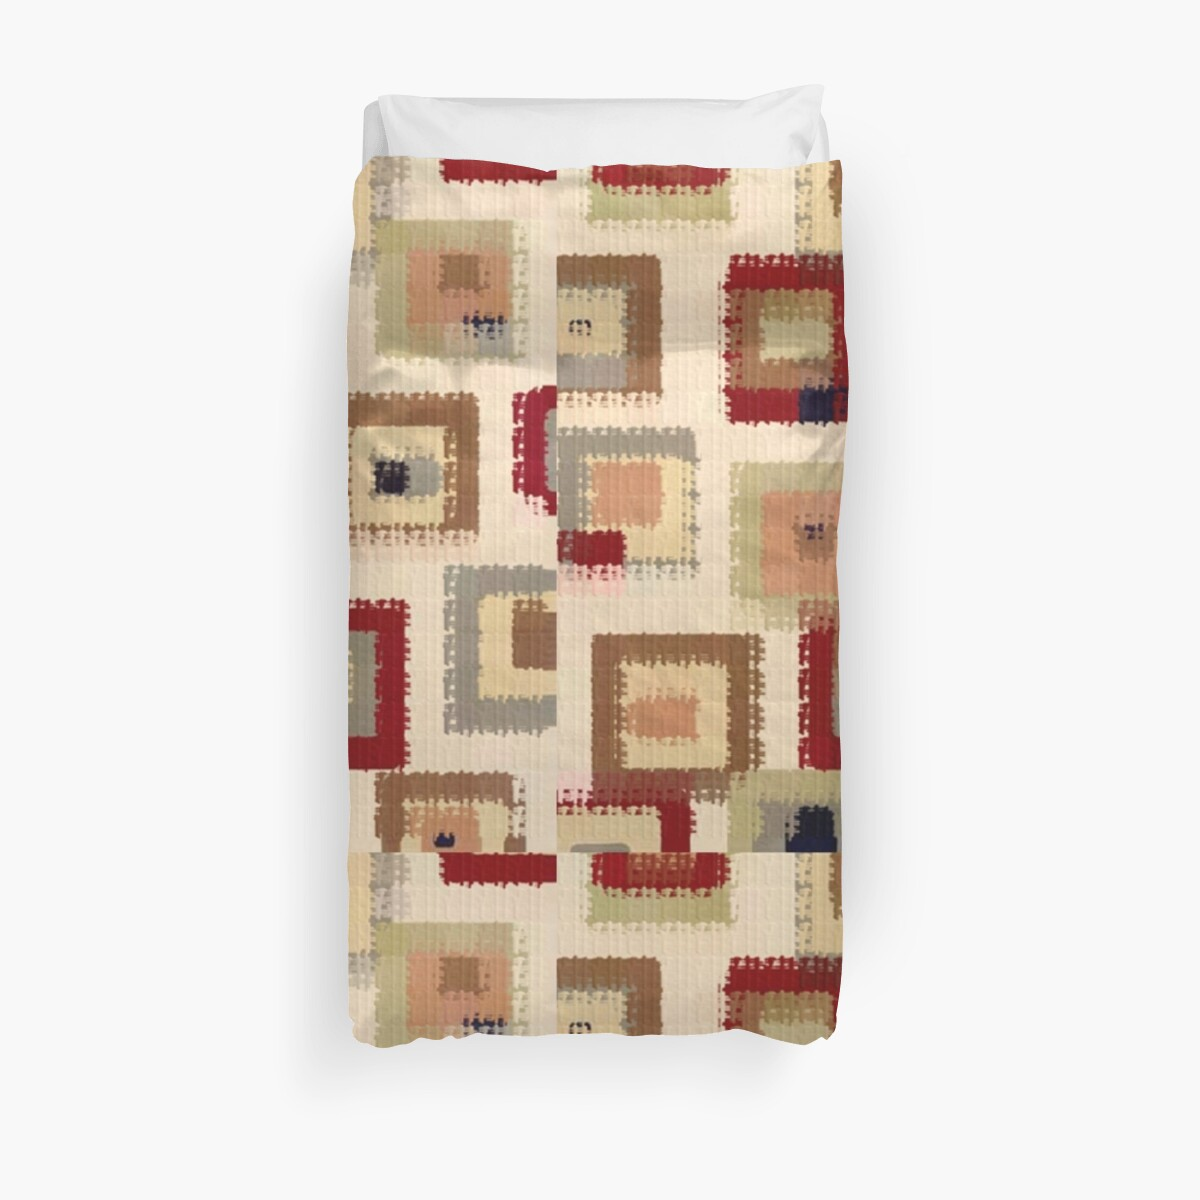 602RB Art, Geometric, Squares Quilt Fabric by Melody Koert